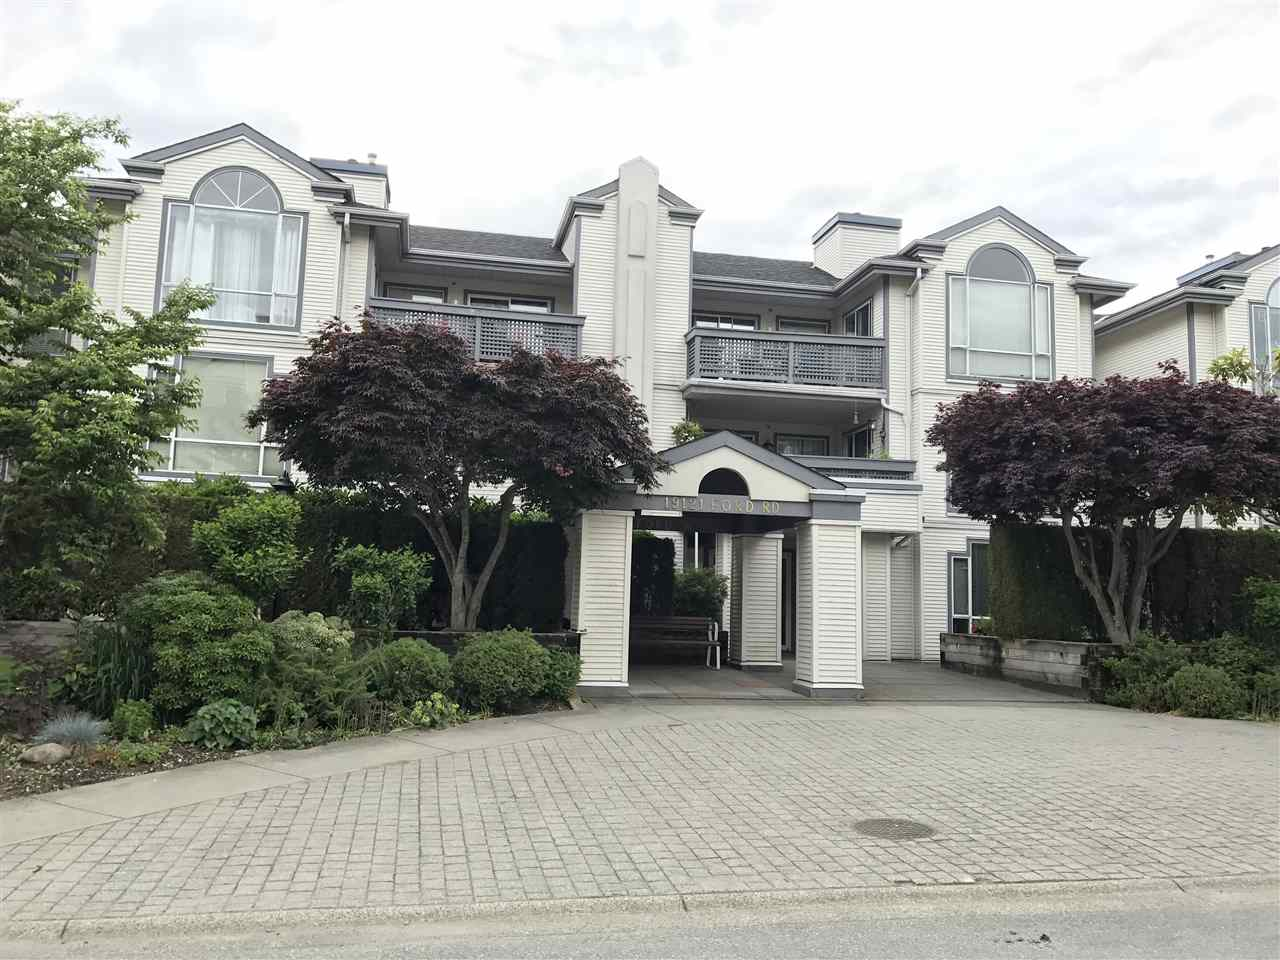 Main Photo: 304 19121 FORD Road in Pitt Meadows: Central Meadows Condo for sale : MLS® # R2177772